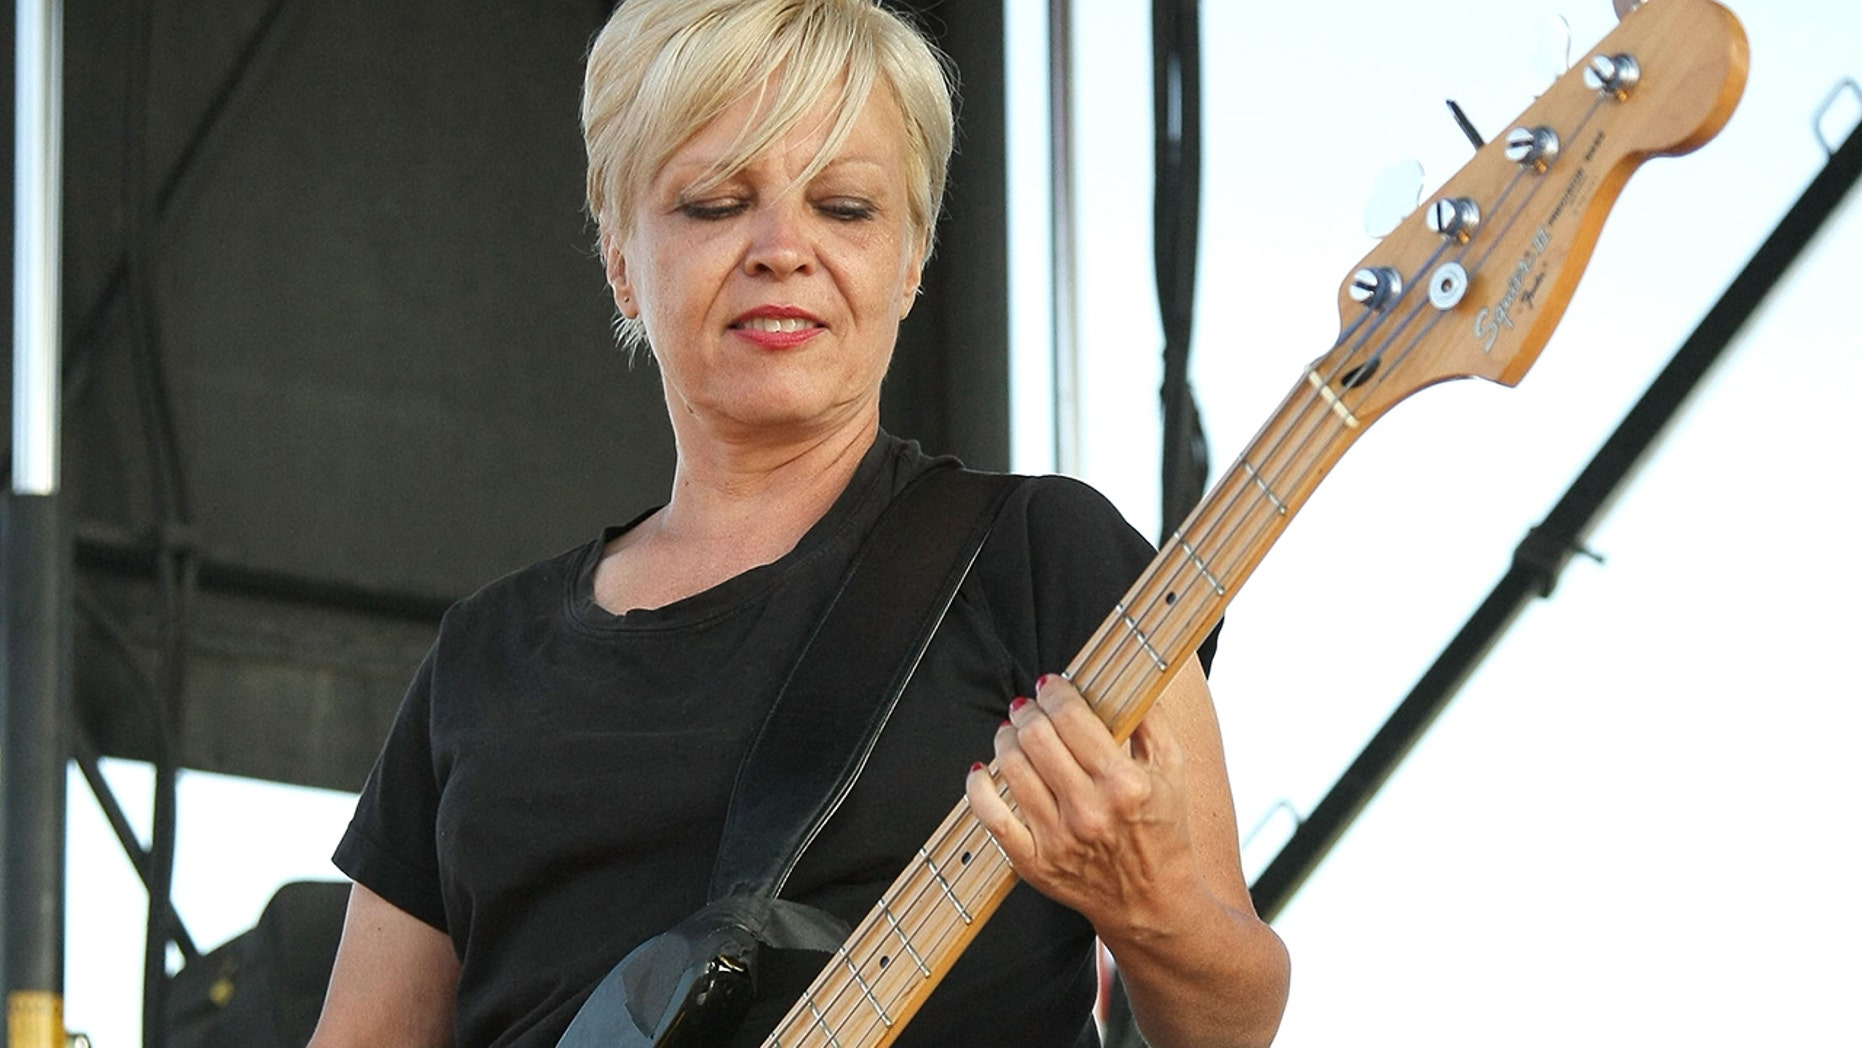 RIP: Lorna Doom, bassist for Germs